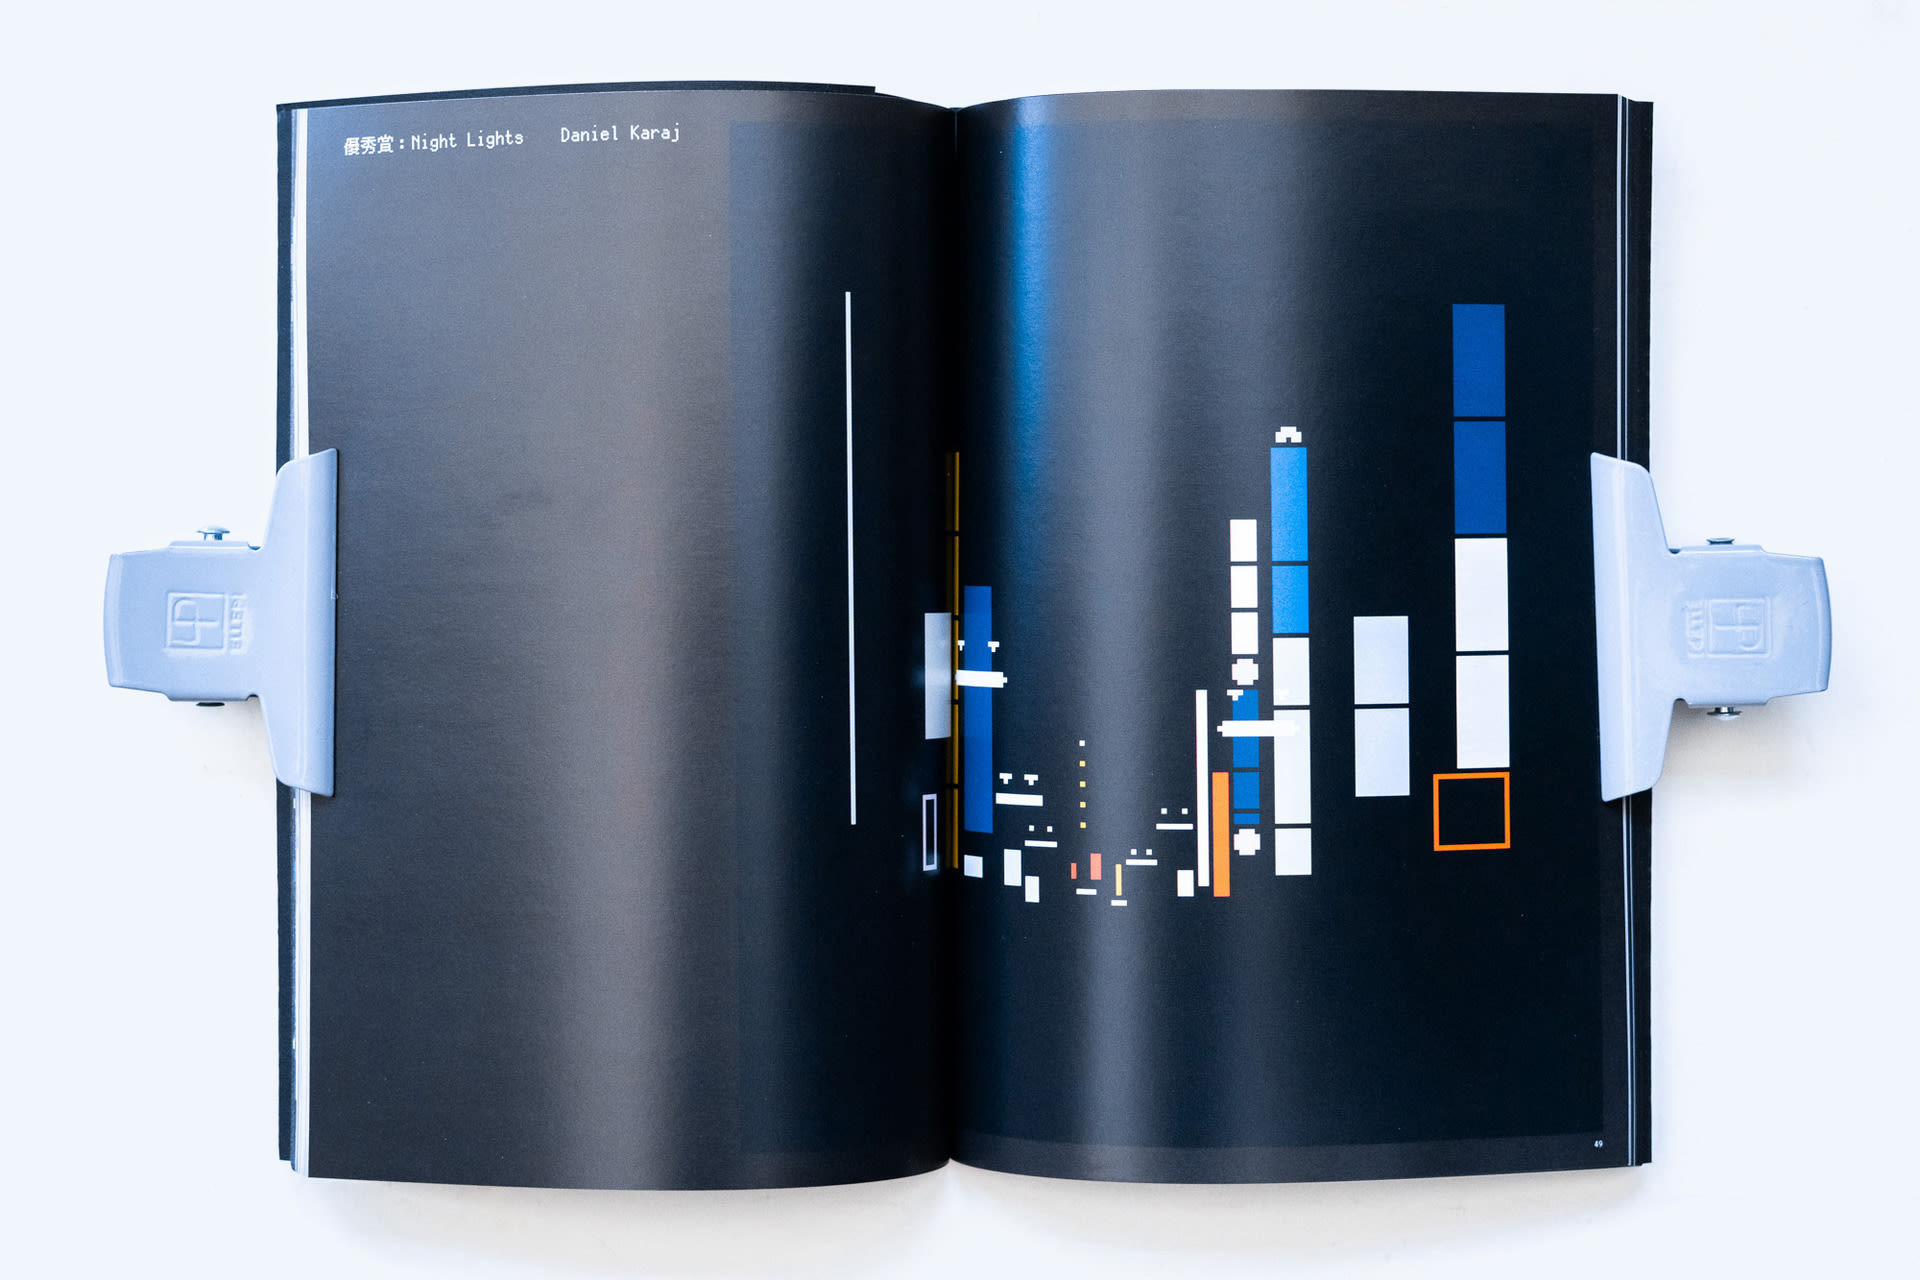 Night Lights was included in a book produced as an accompaniment to the exhibition and competition.